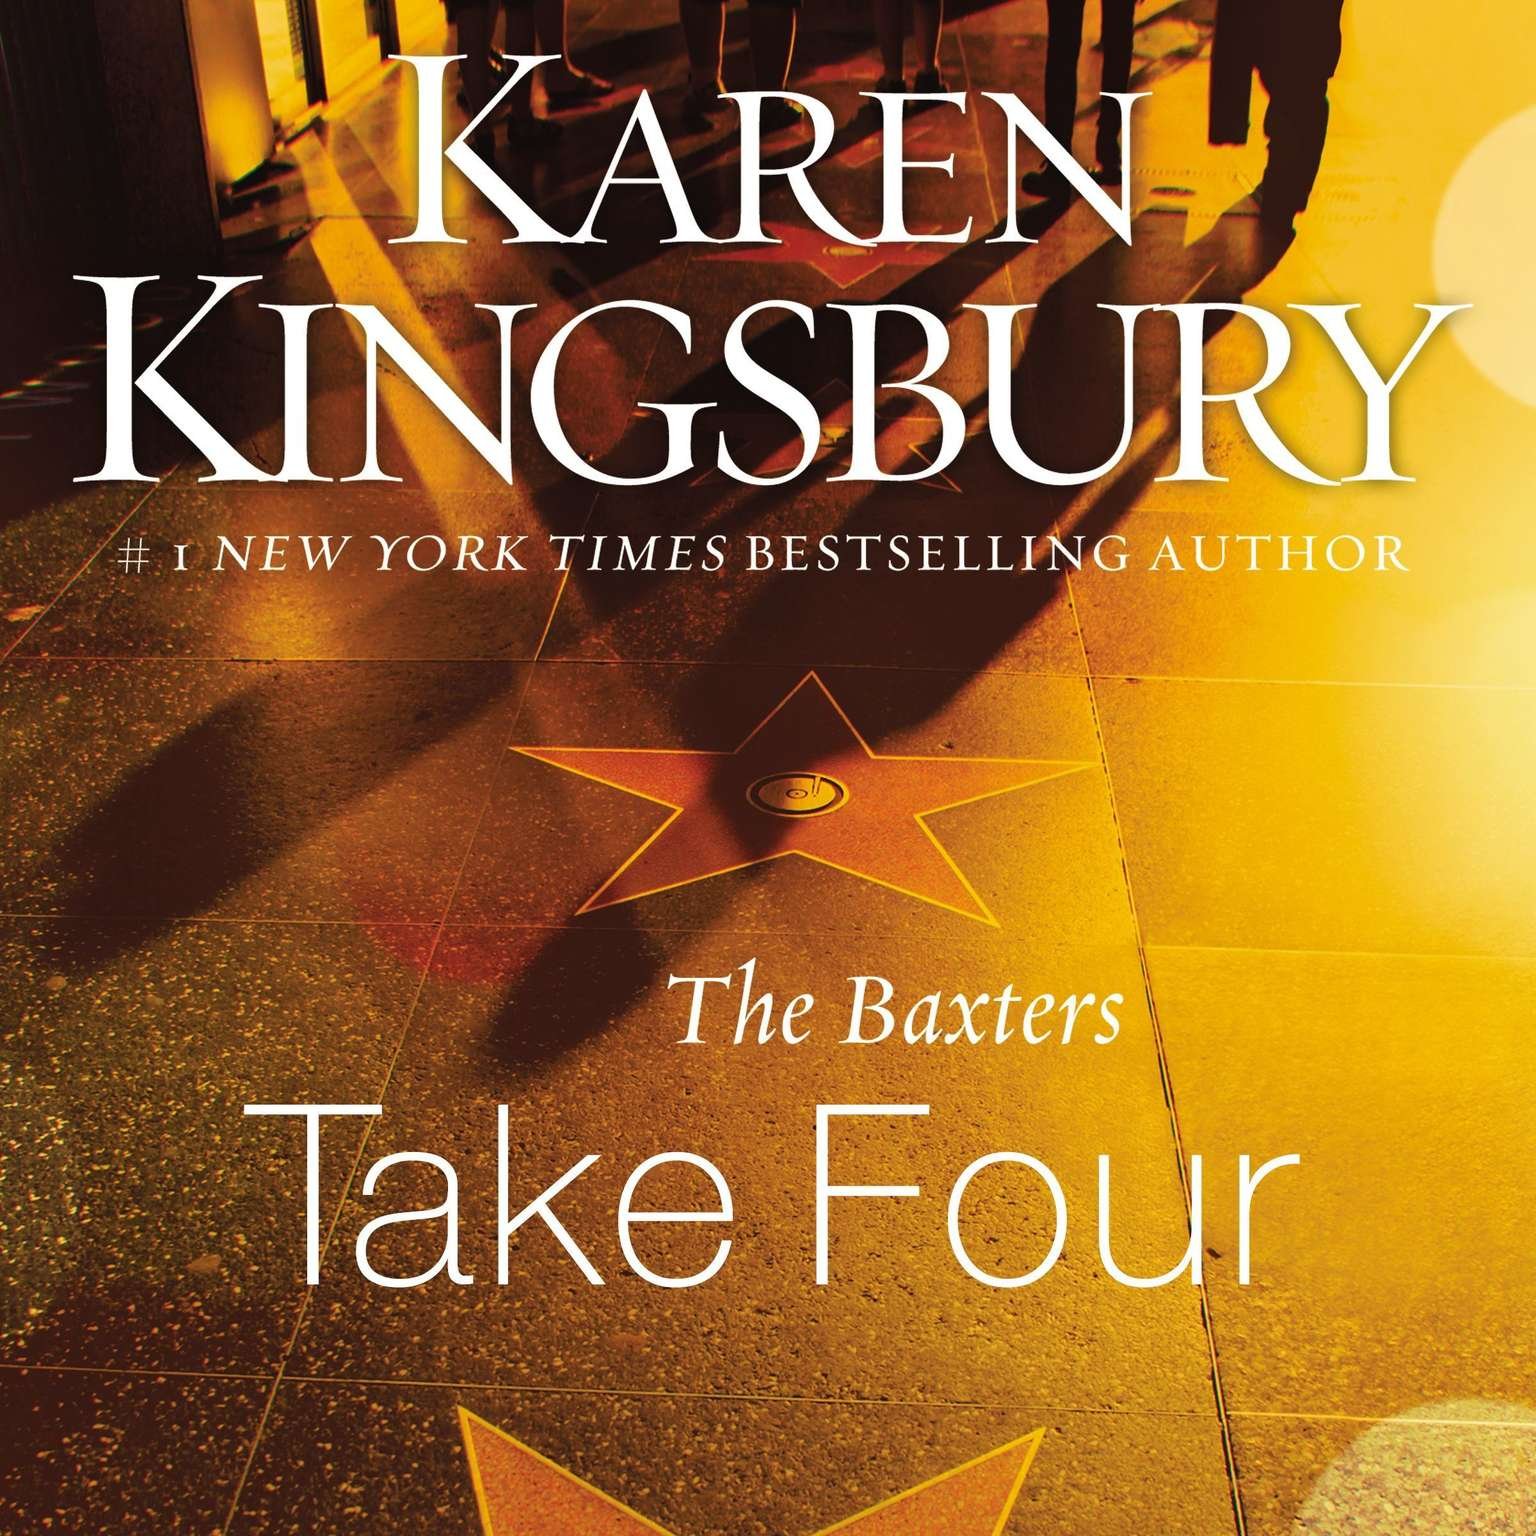 Printable The Baxters Take Four Audiobook Cover Art